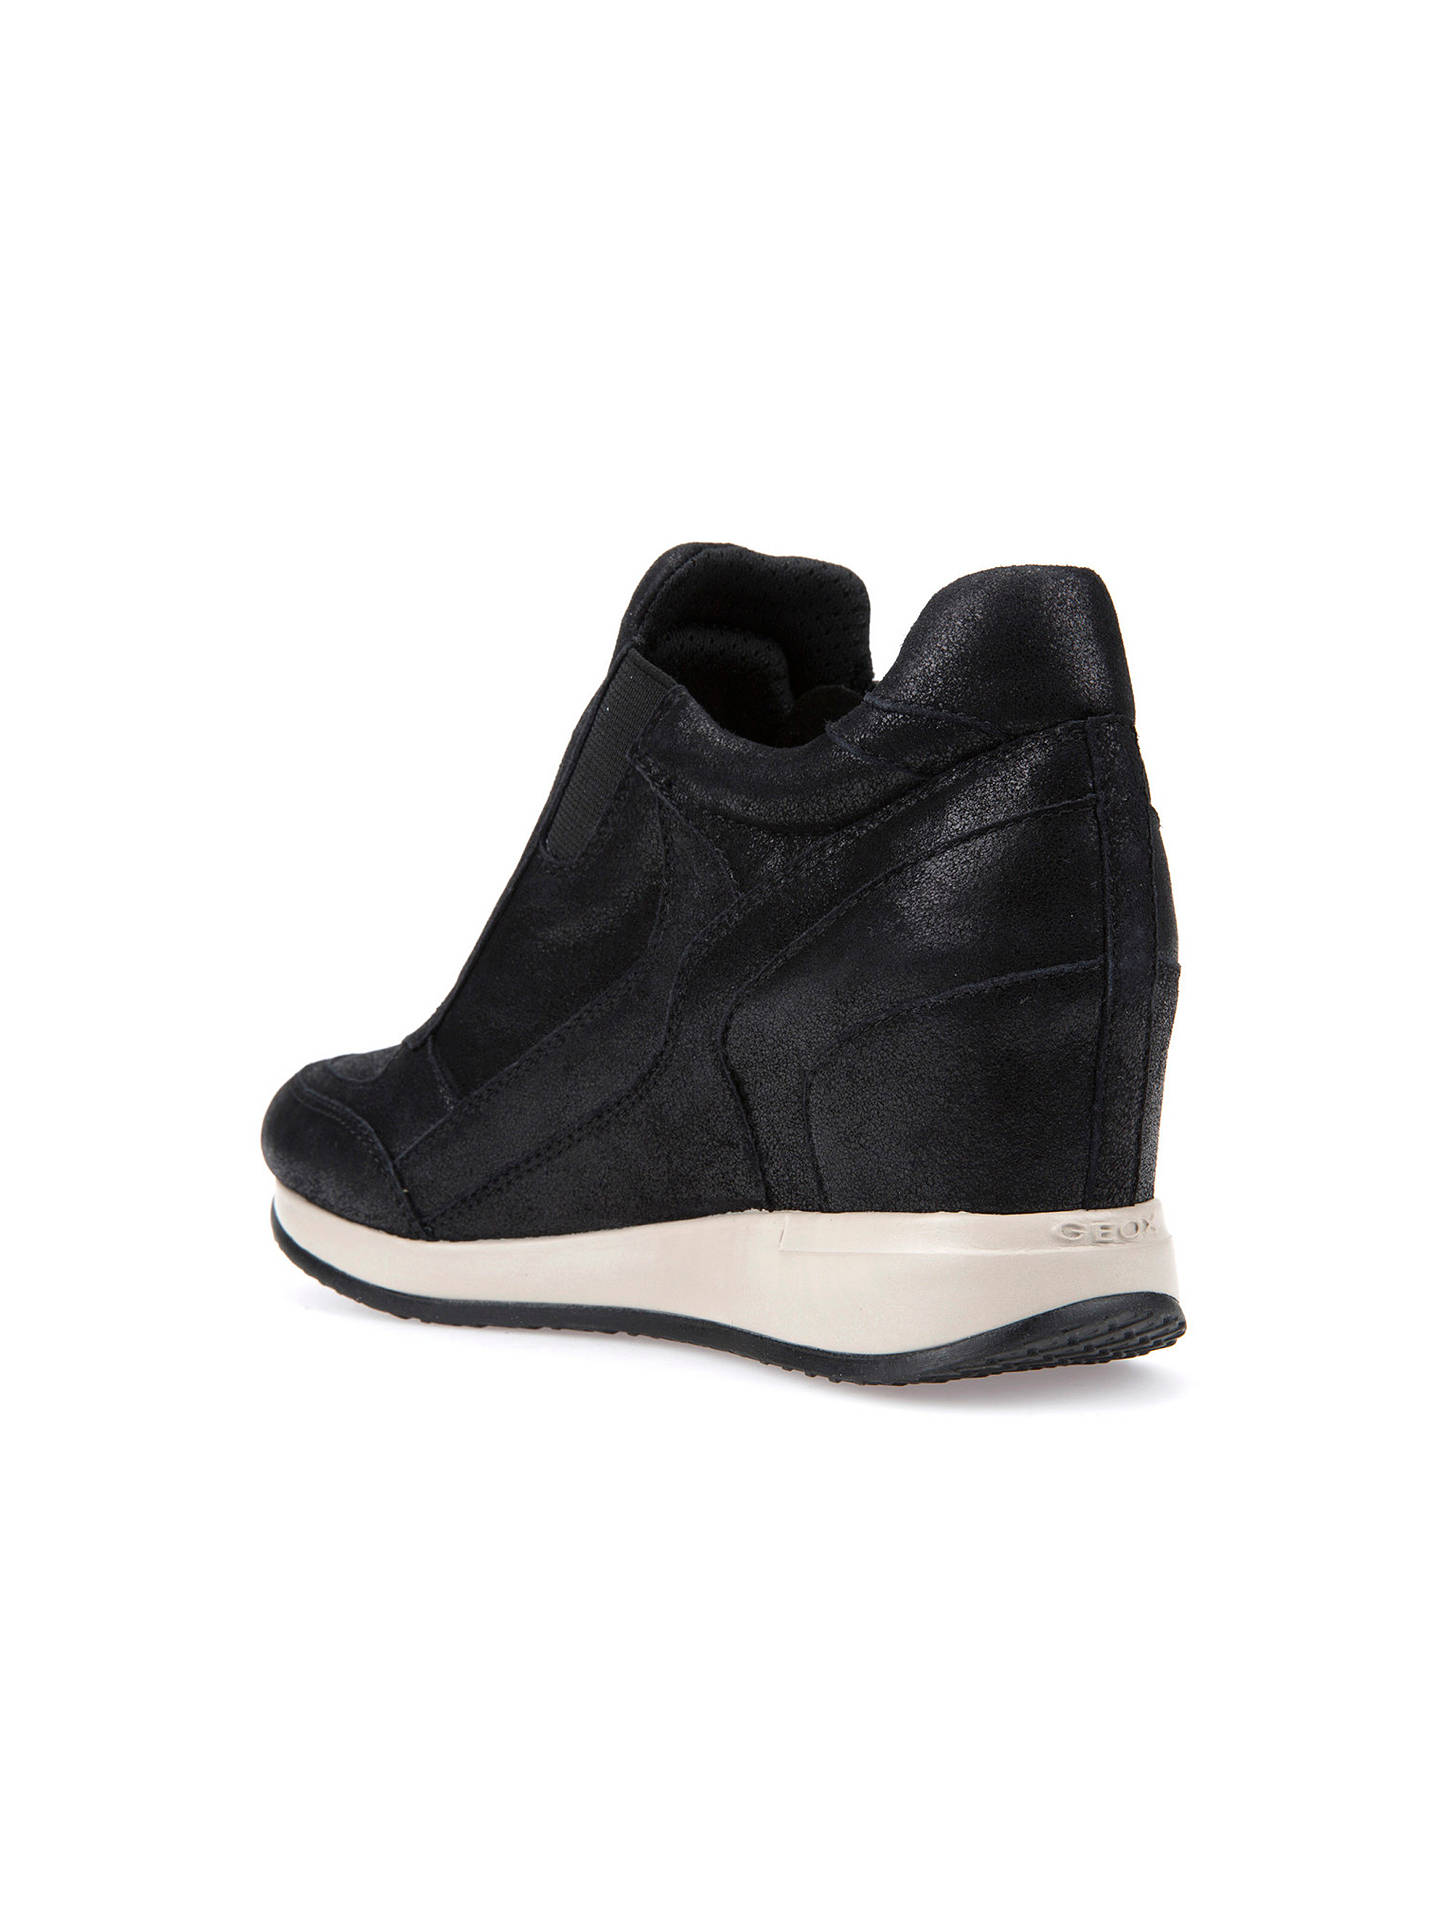 BuyGeox Nydame Wedge Heeled Zip Up Trainers, Black, 3 Online at johnlewis.com